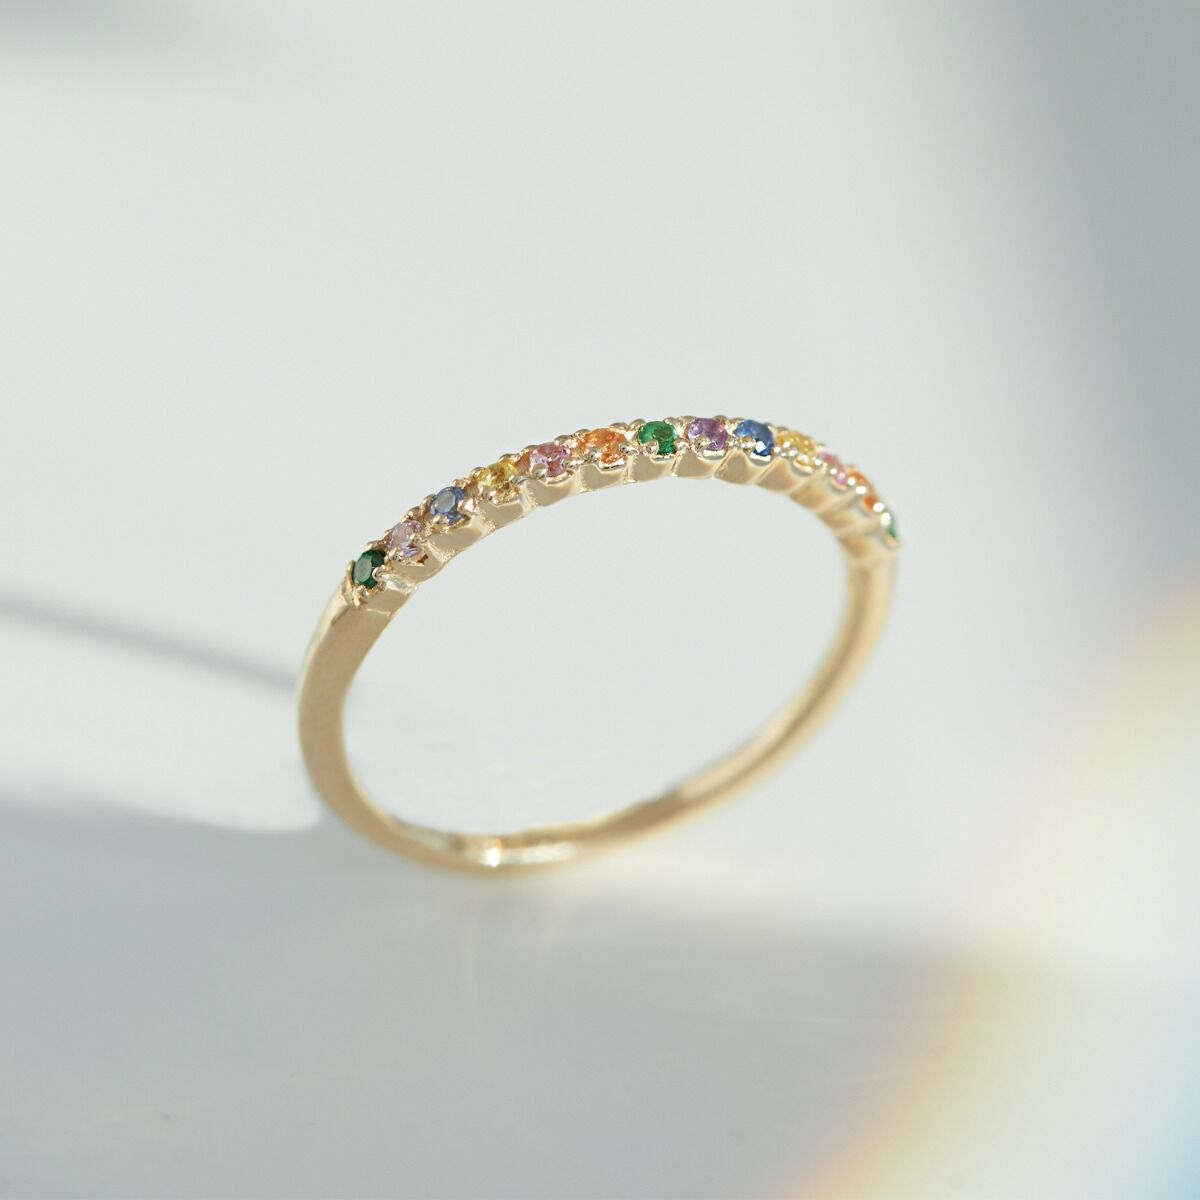 In Rainbows Ring image